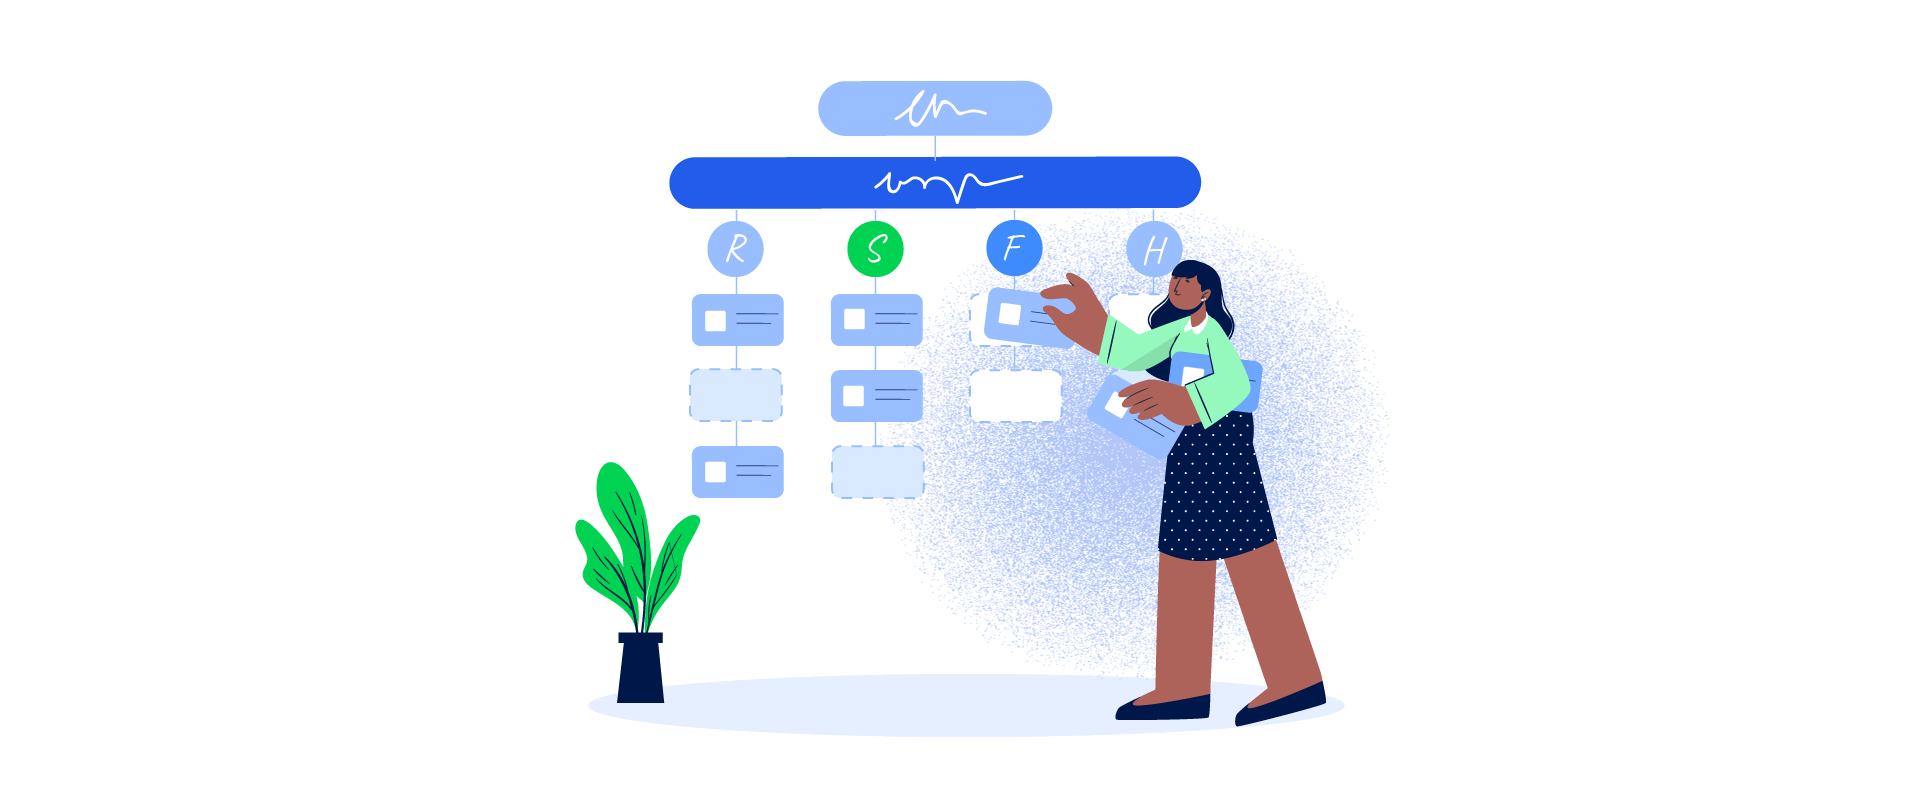 You will see that a major portion of the project is getting handled without your help in every step. Suffice it is for you to get a regular progress report and remove any blocker.